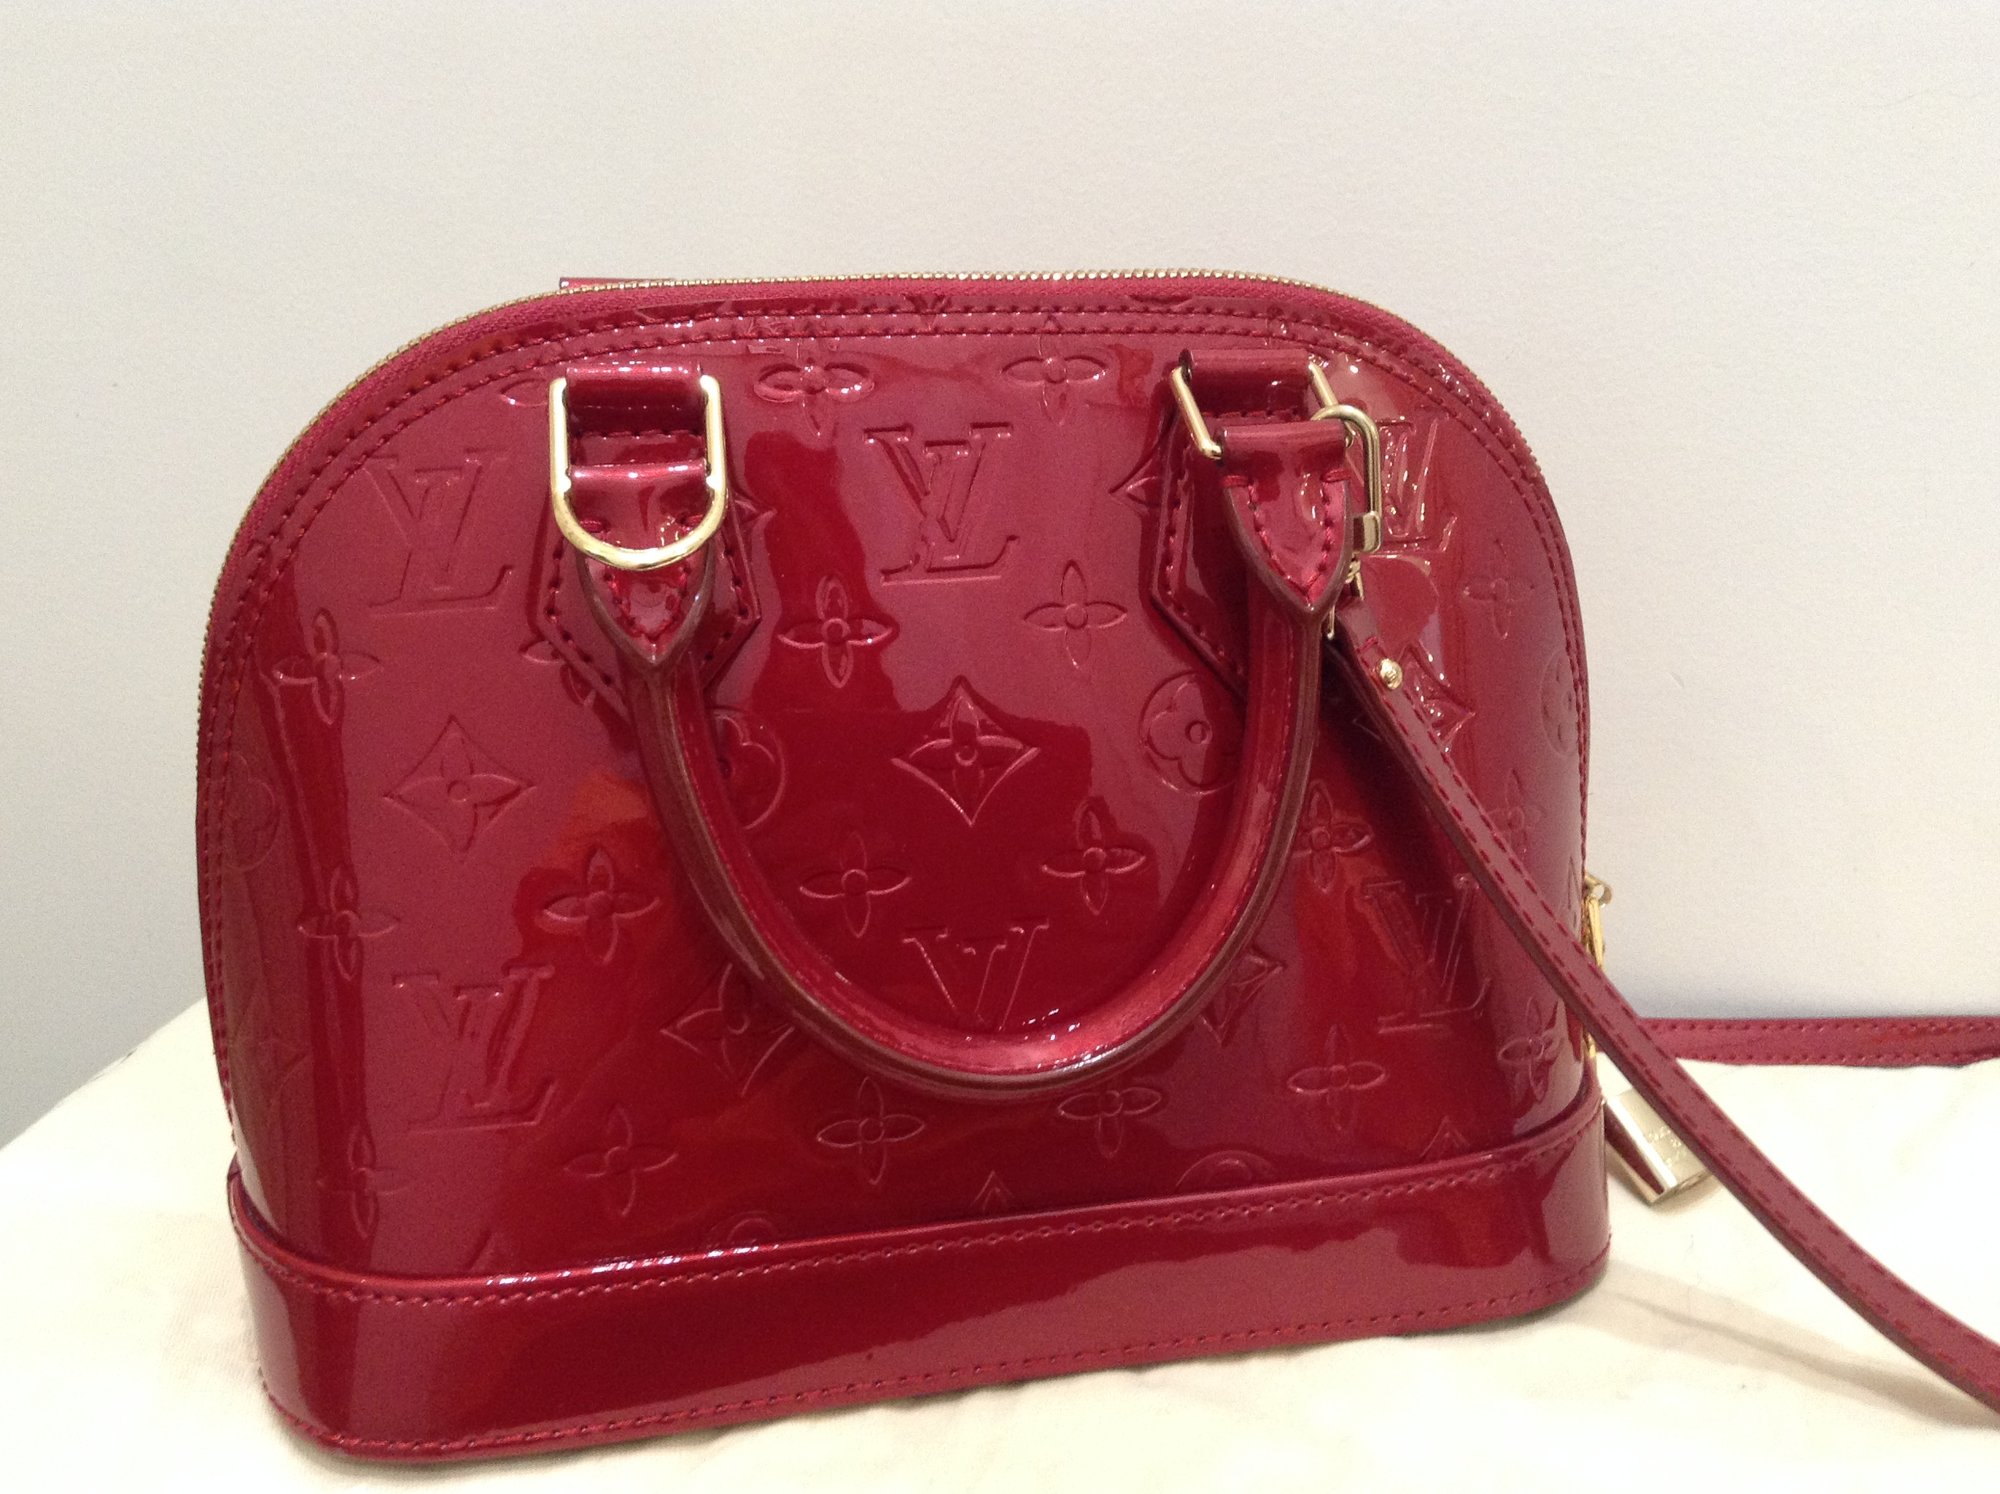 LOUIS VUITTON<br /> Authentic - with reciept<br /> Patent Logo Purse + Strap<br /> Red<br /> Size: Small